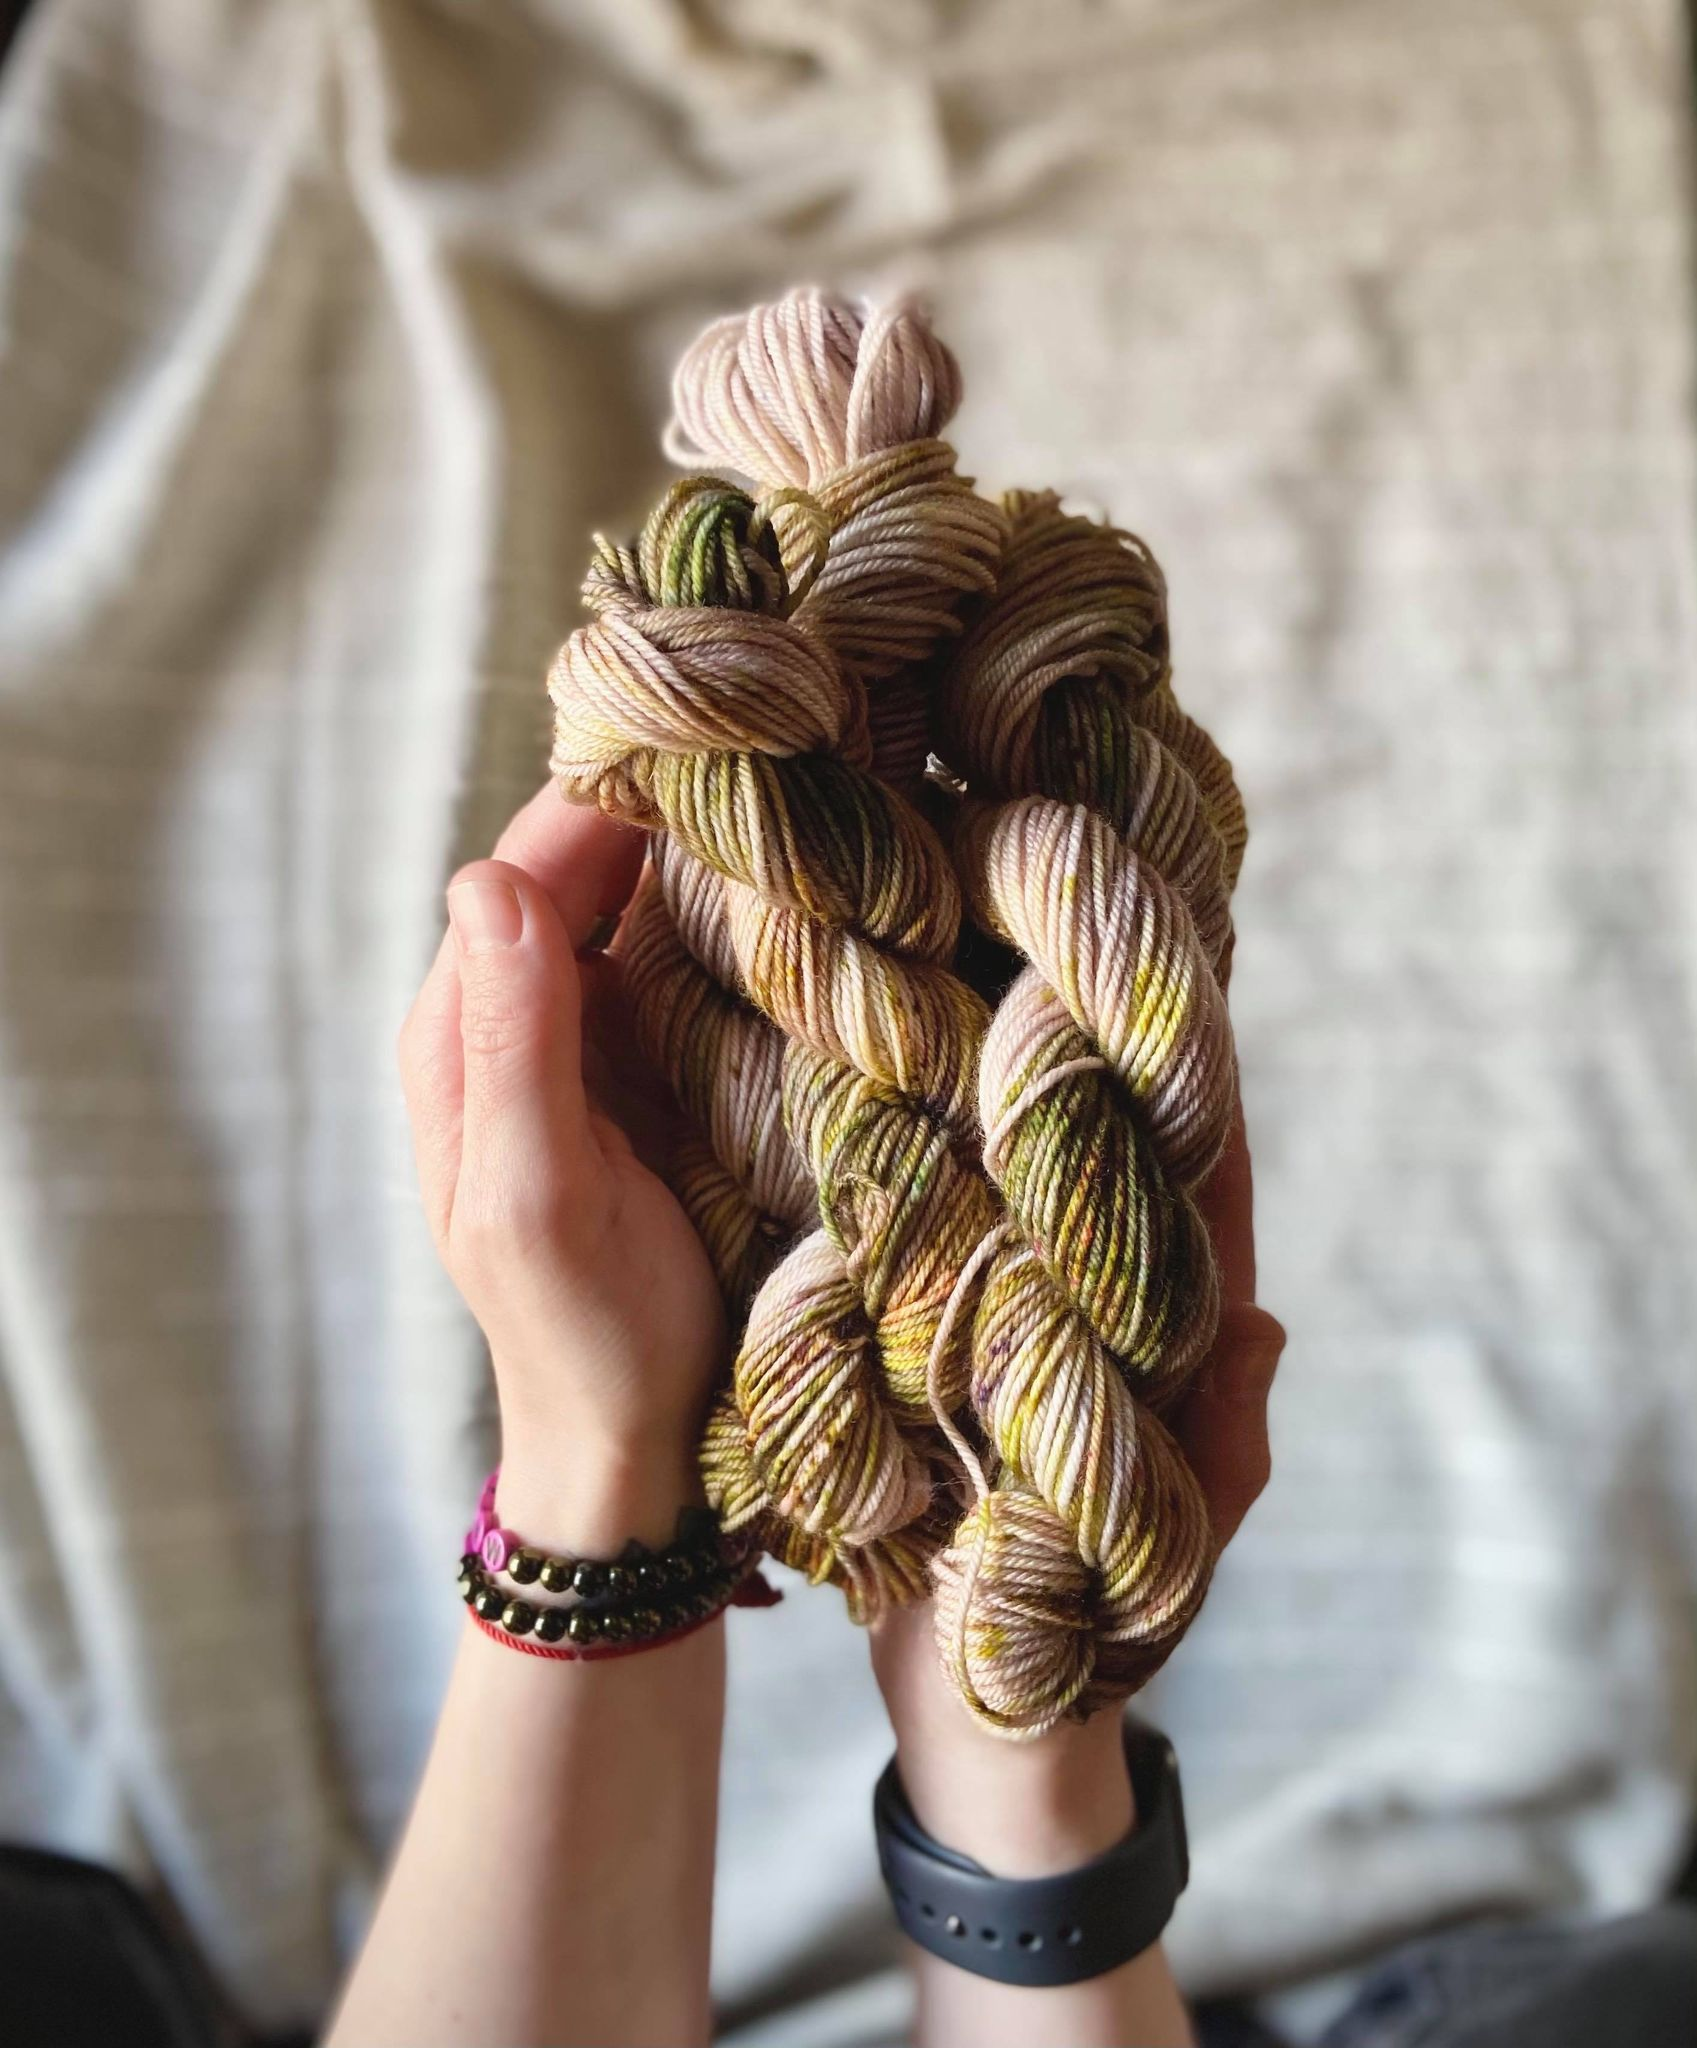 How to choose the perfect hand dyed yarn for your projects